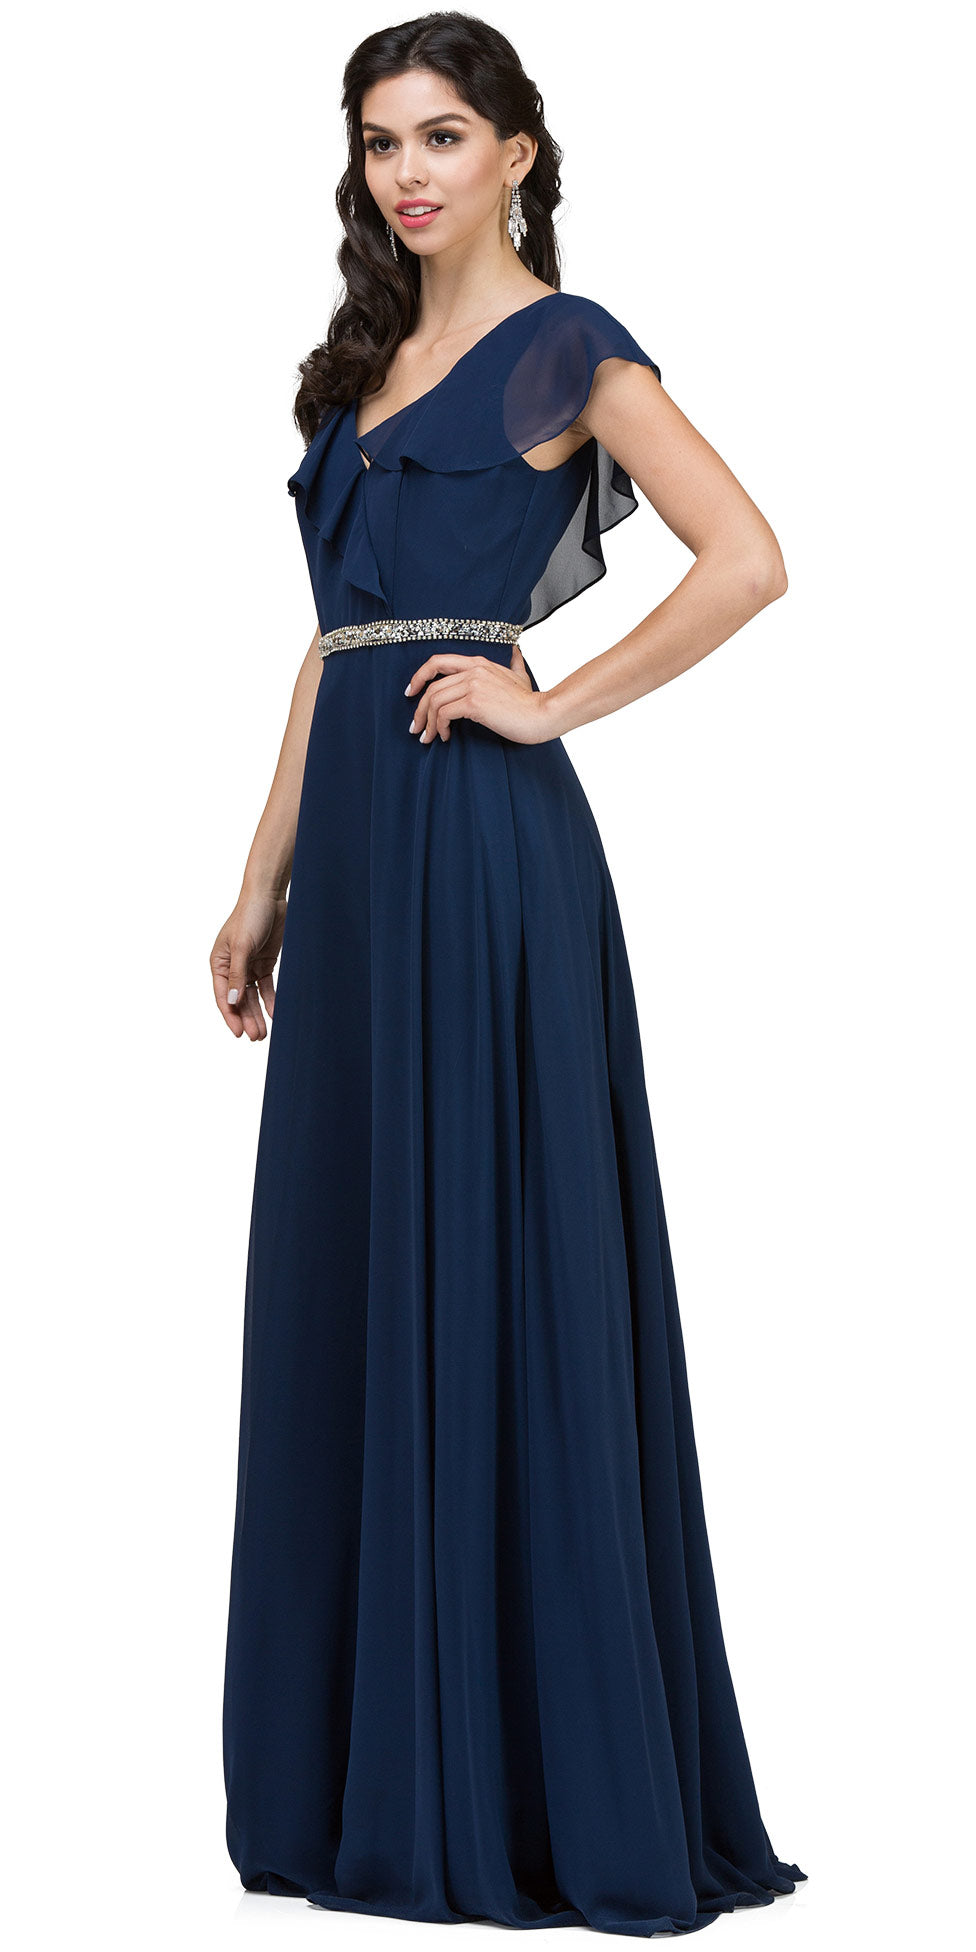 Main image of V-neck Ruffled Top Beaded Waist Long Chiffon Formal Dress